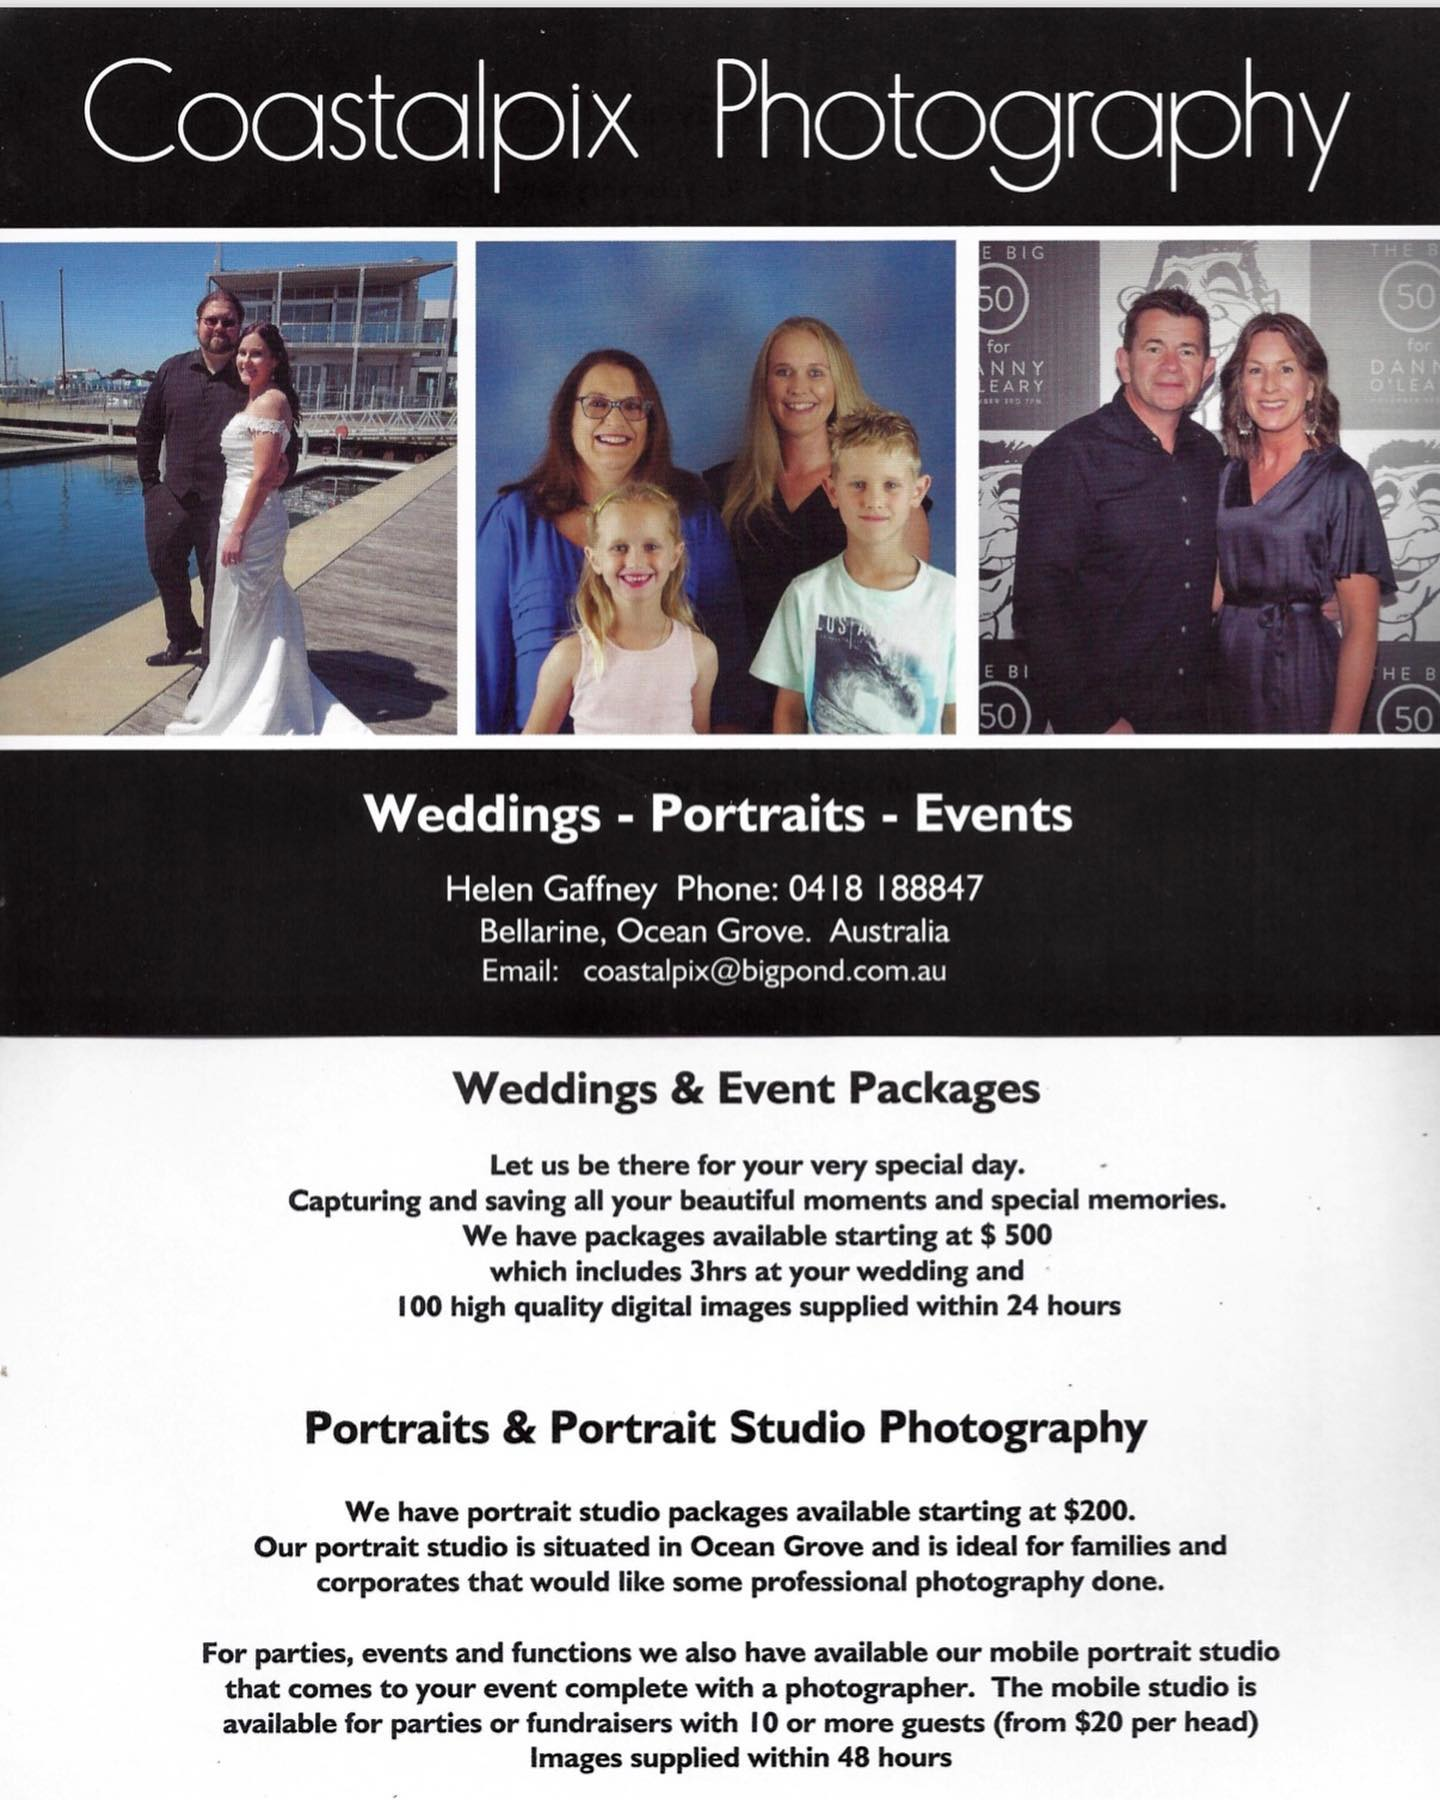 weddings-events-59461301-830514610681086-5137541382990200832-o.jpg